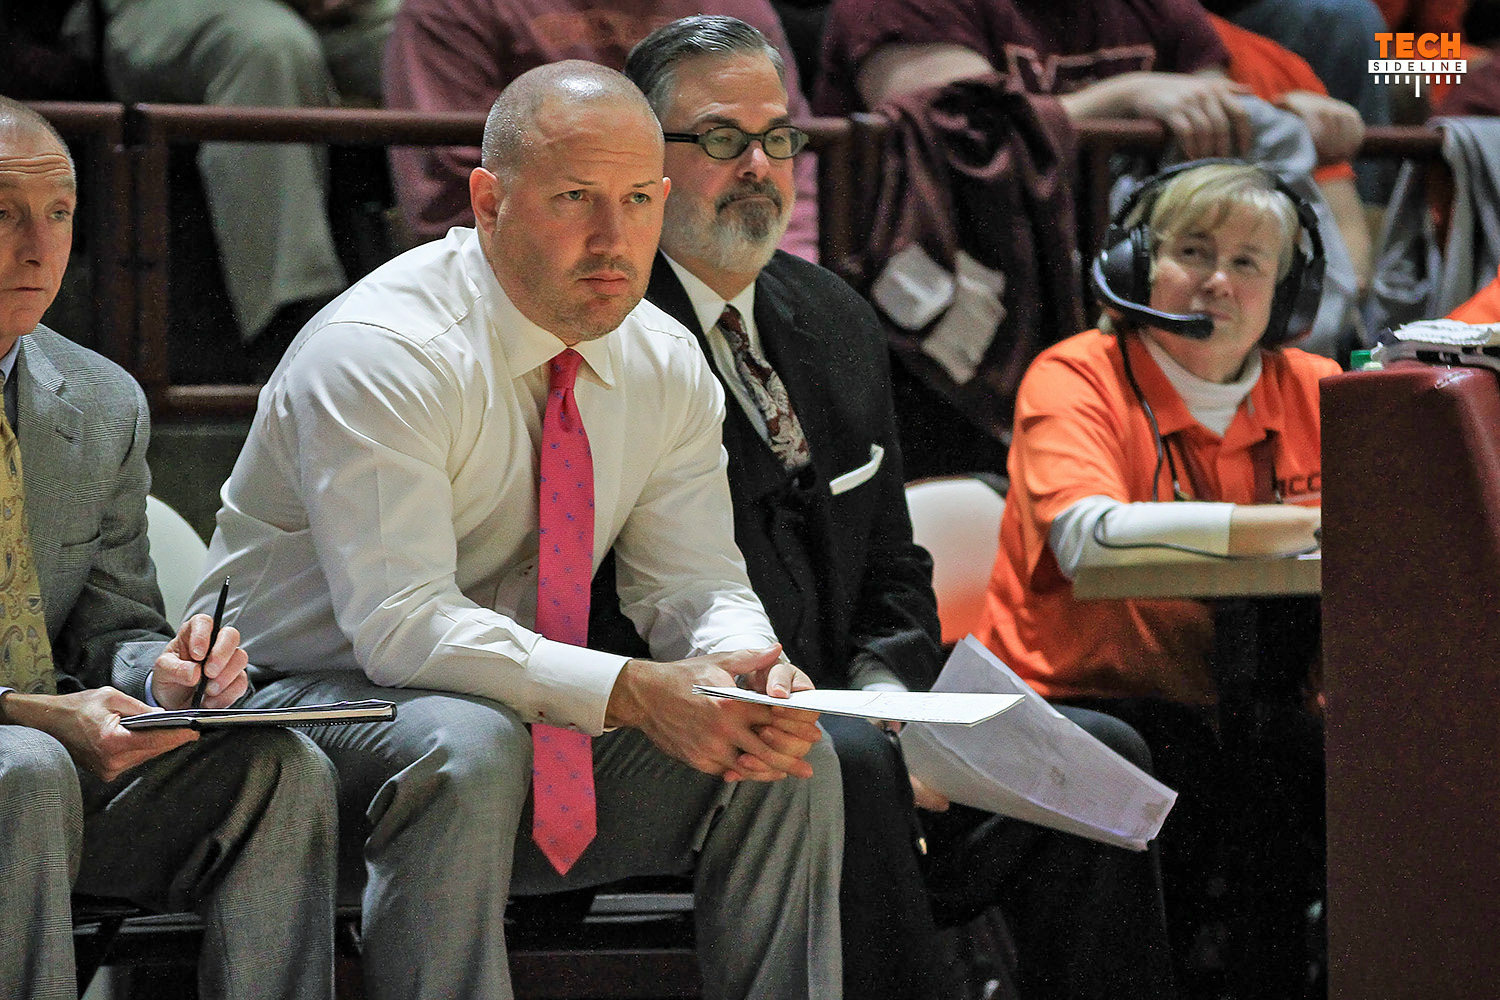 Vt_mbb_buzz_williams_2016_05